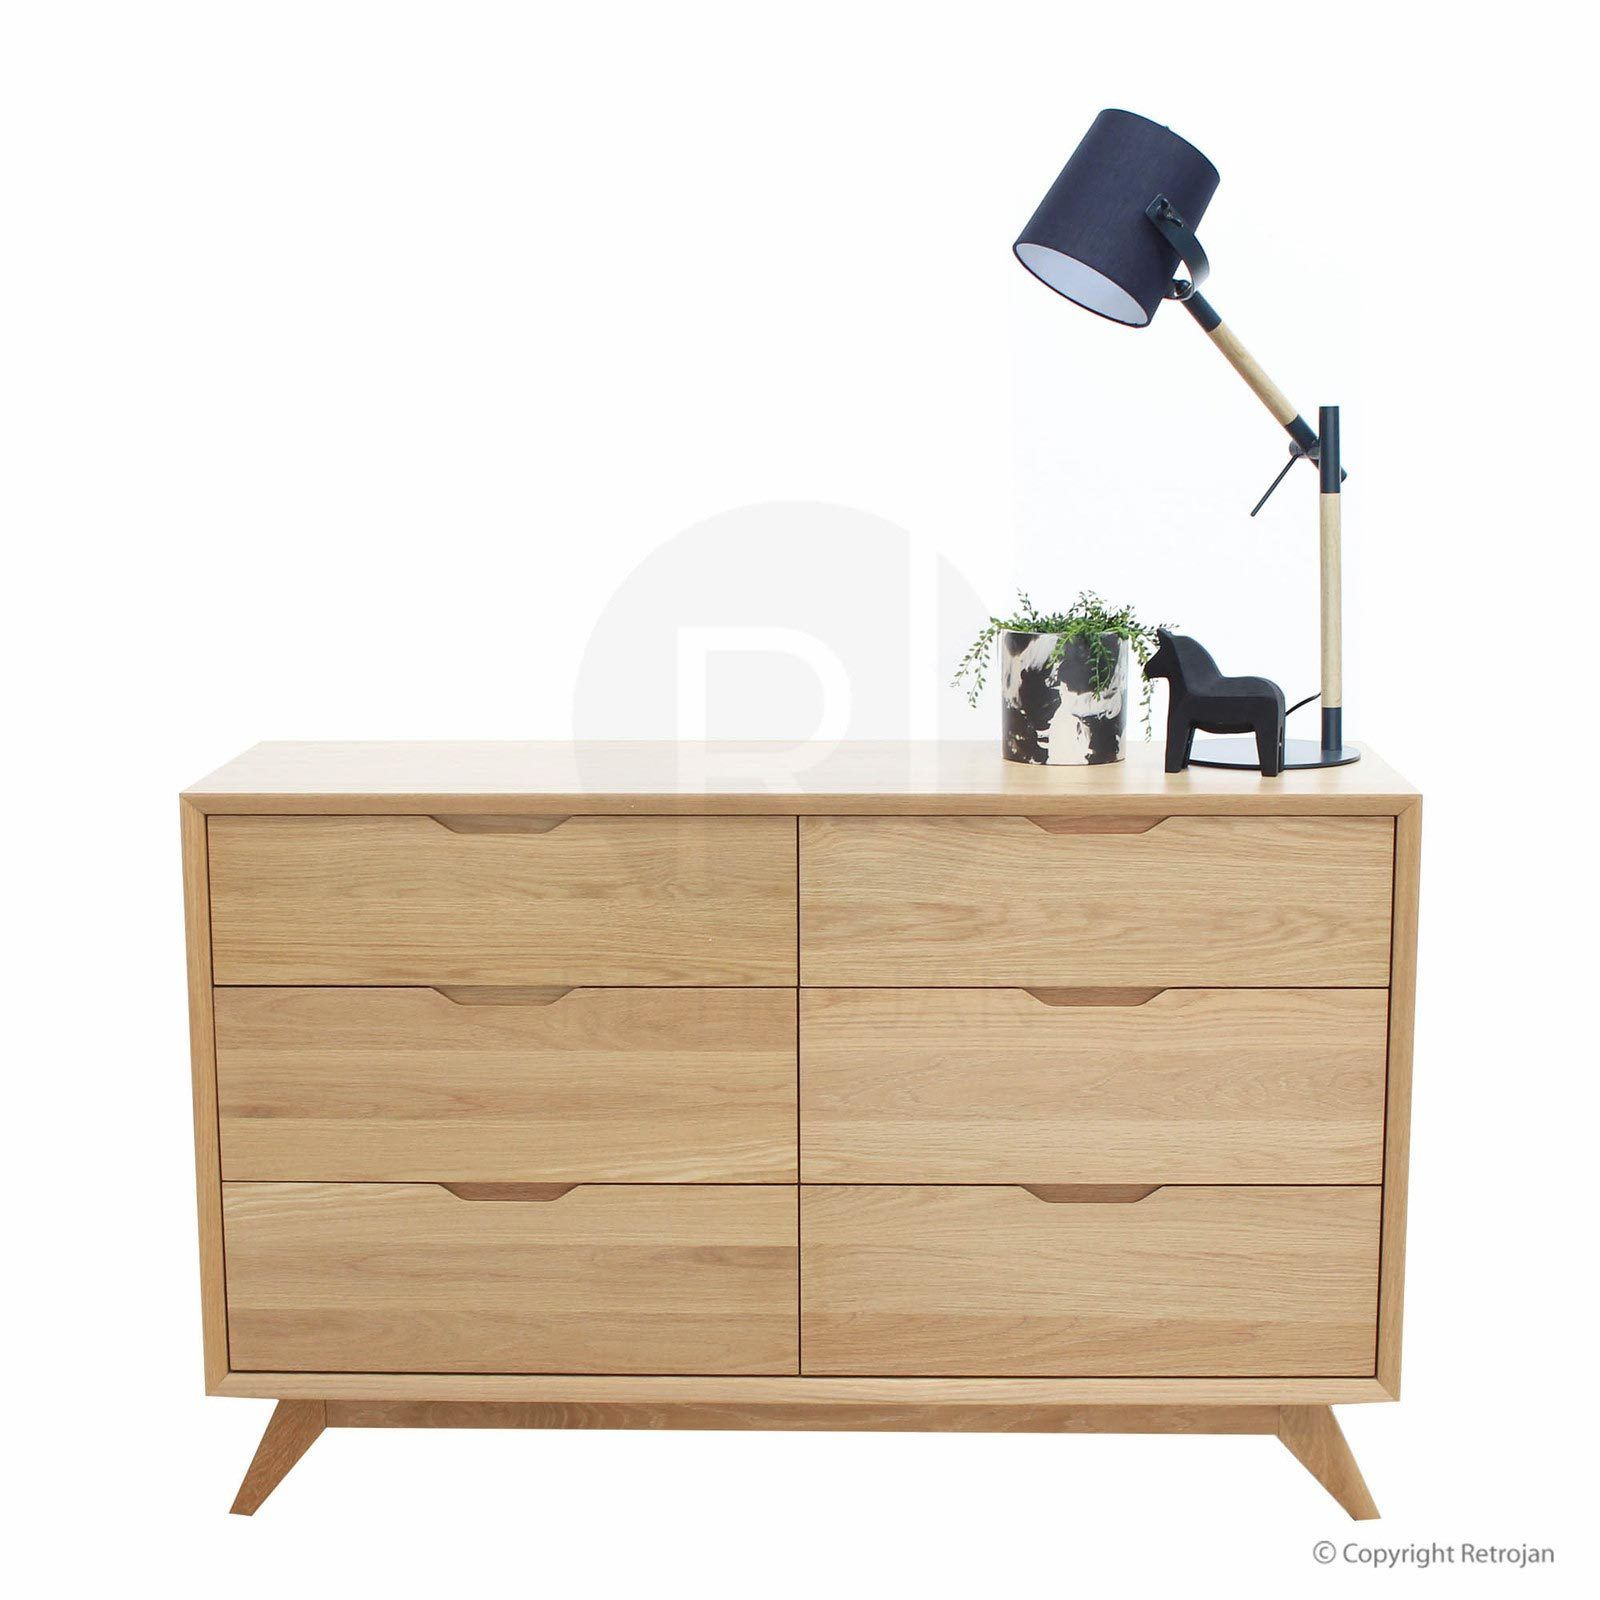 Ranvir Modern Designer 6 Drawer Chest Pickup Unavailable From Our Melbourne Warehouse This Product Is Not Currently On Display In Abbotsford Showroom